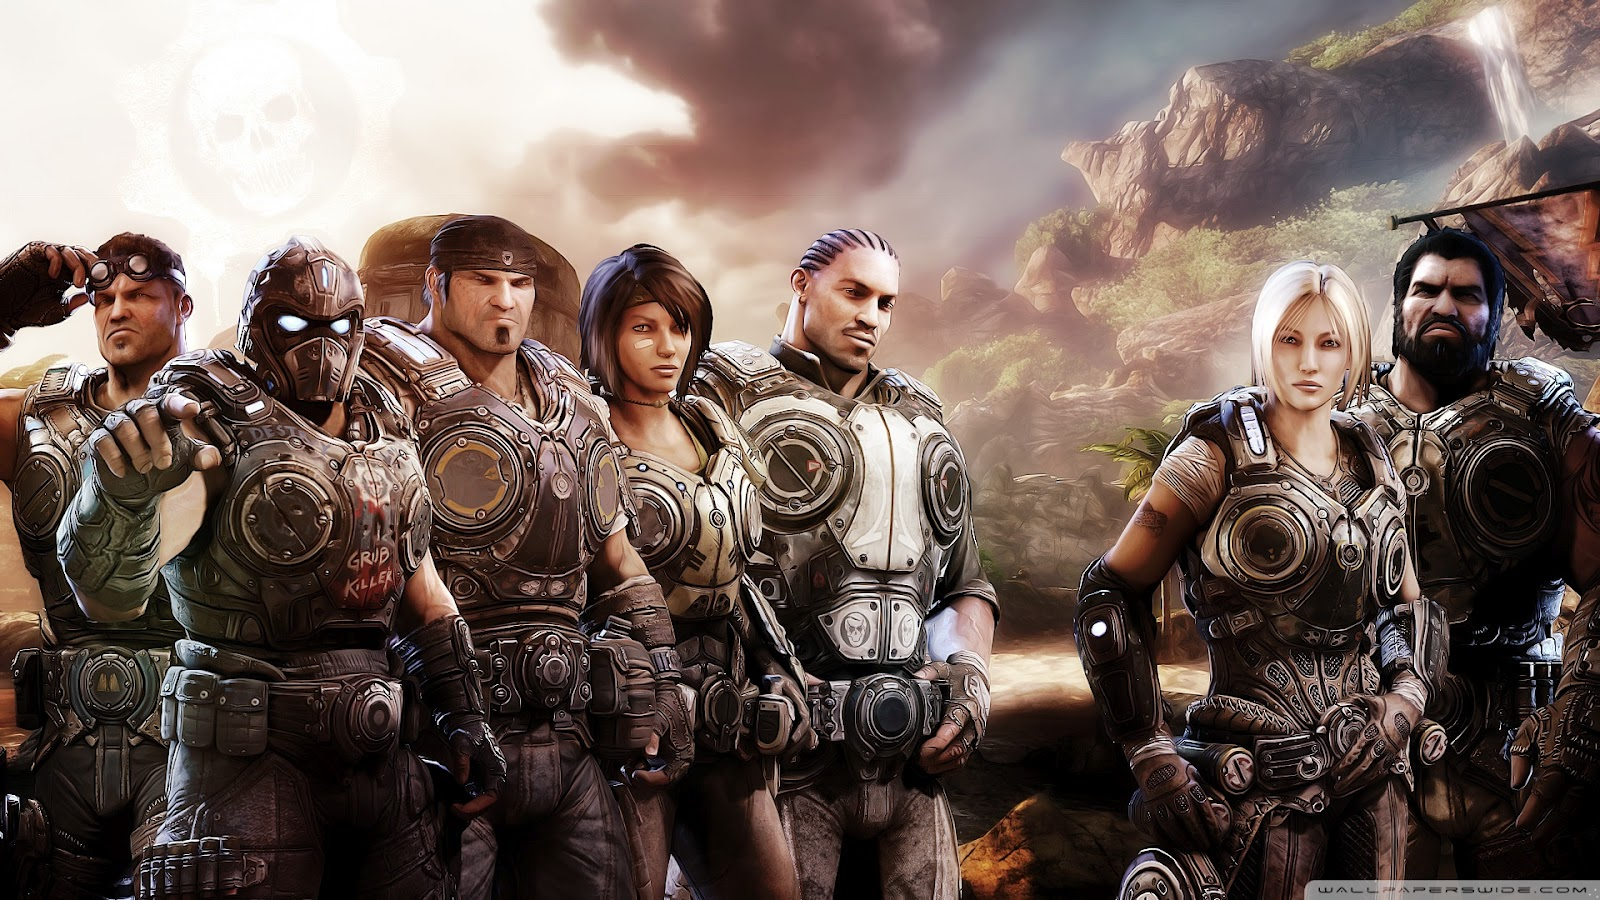 Gears of War HD & Widescreen Wallpaper 0.0695774424757465